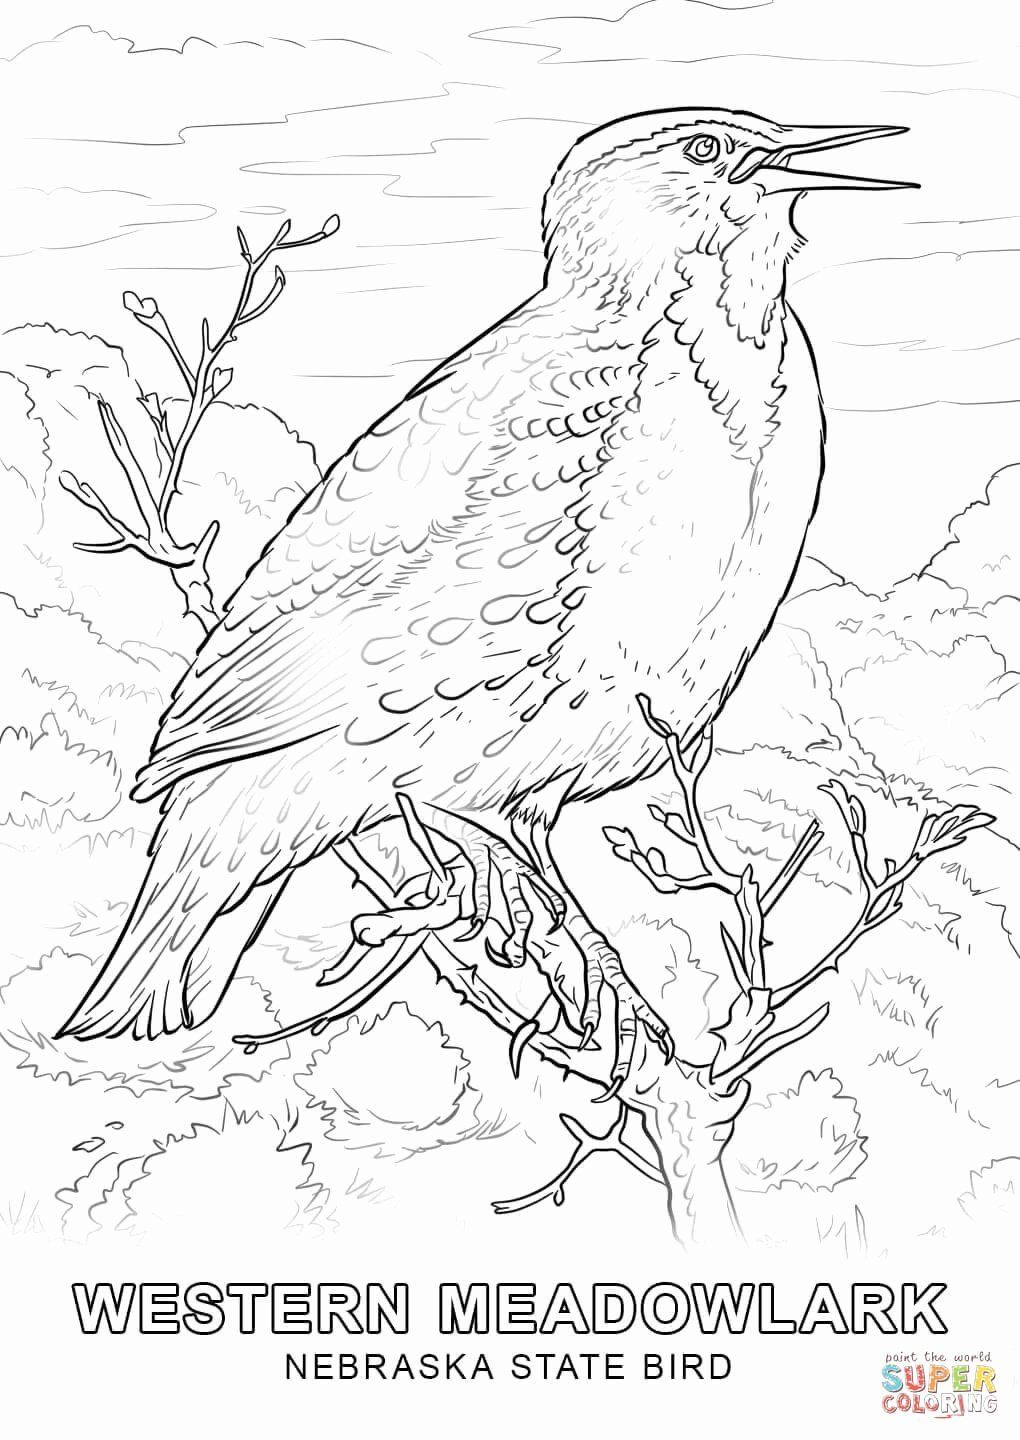 Montana State Flag Coloring Page Unique Nebraska State Bird Coloring Page In 2020 Bird Coloring Pages Flag Coloring Pages Flower Coloring Pages